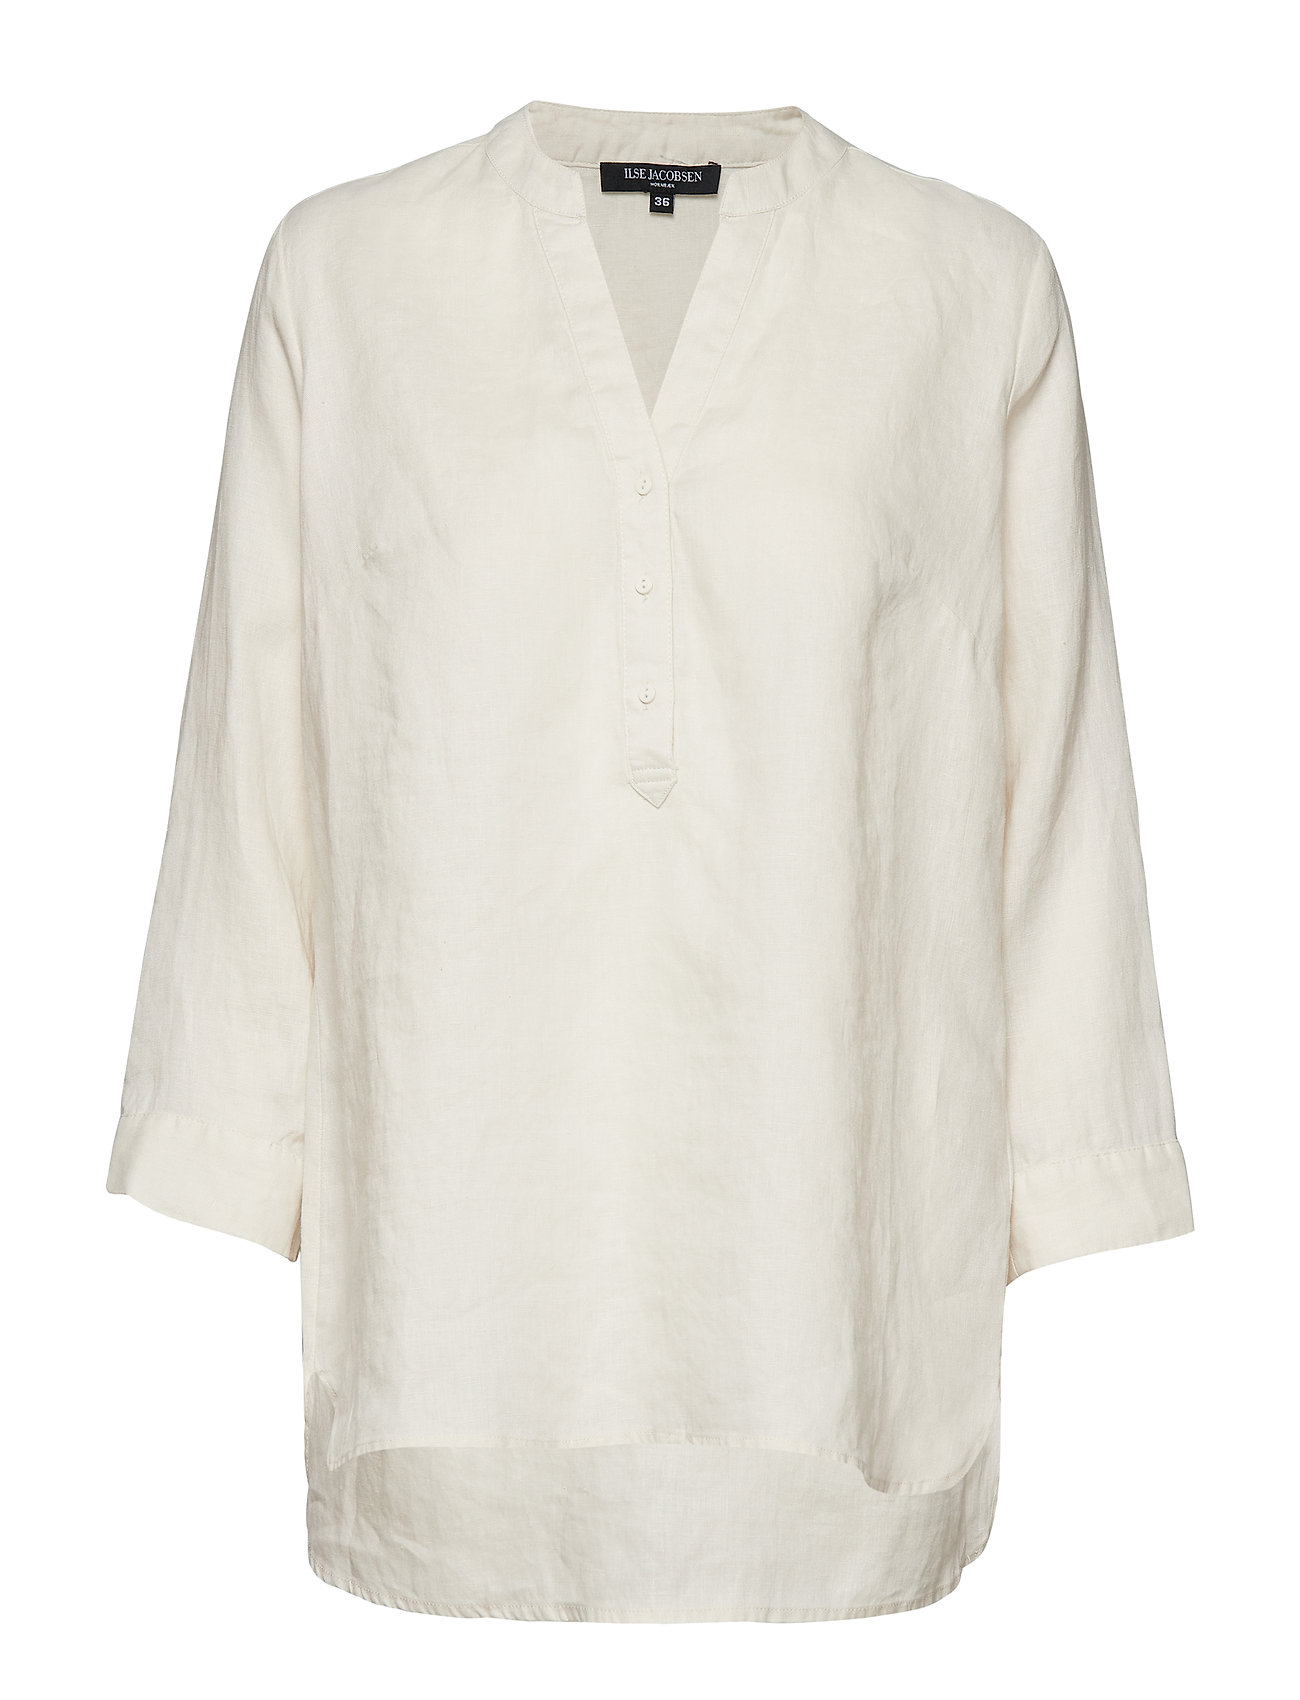 Ilse Jacobsen SHIRT